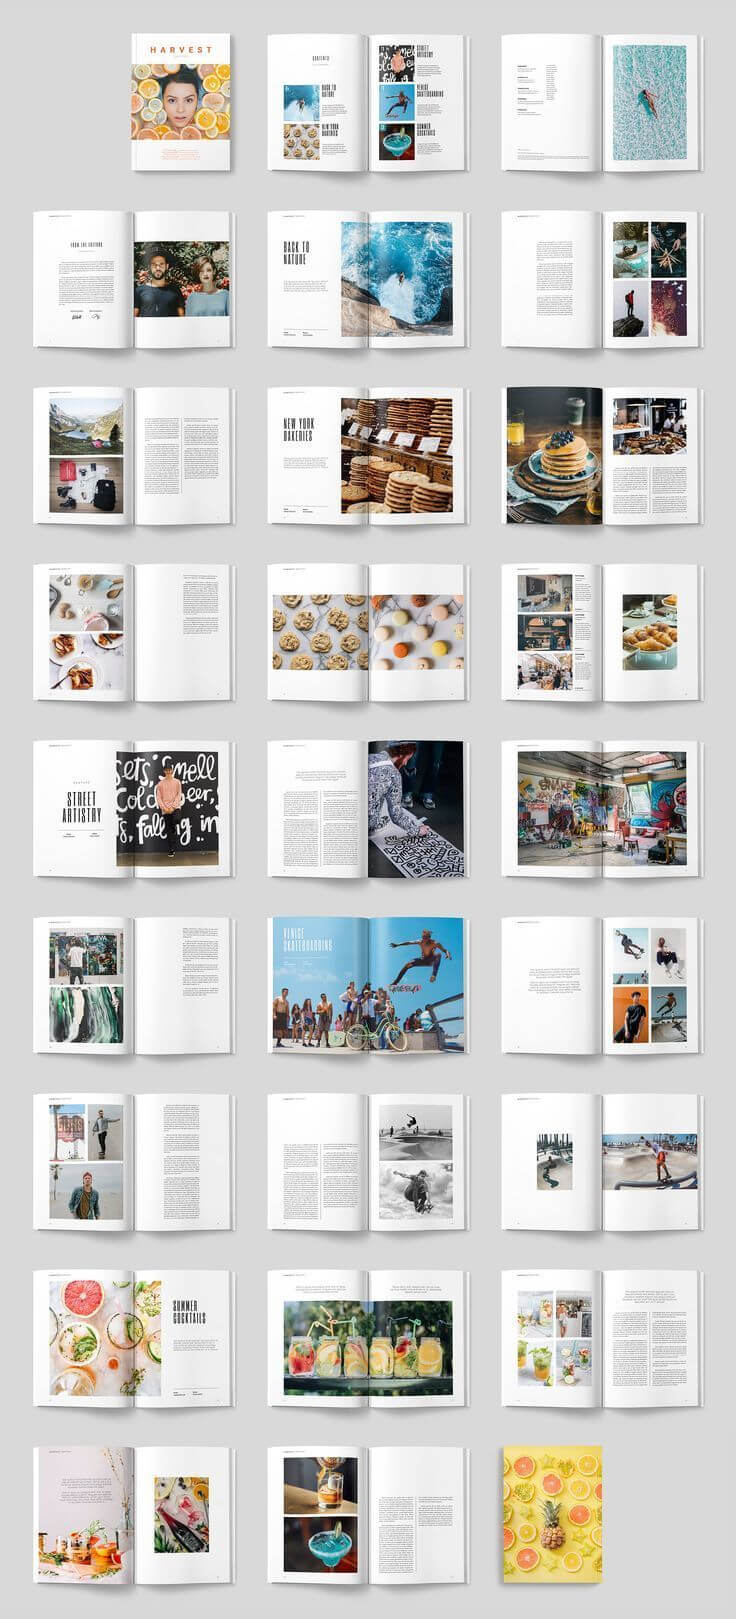 040 Magazine Template For Microsoft Word Ideas Wondrous Intended For Magazine Template For Microsoft Word